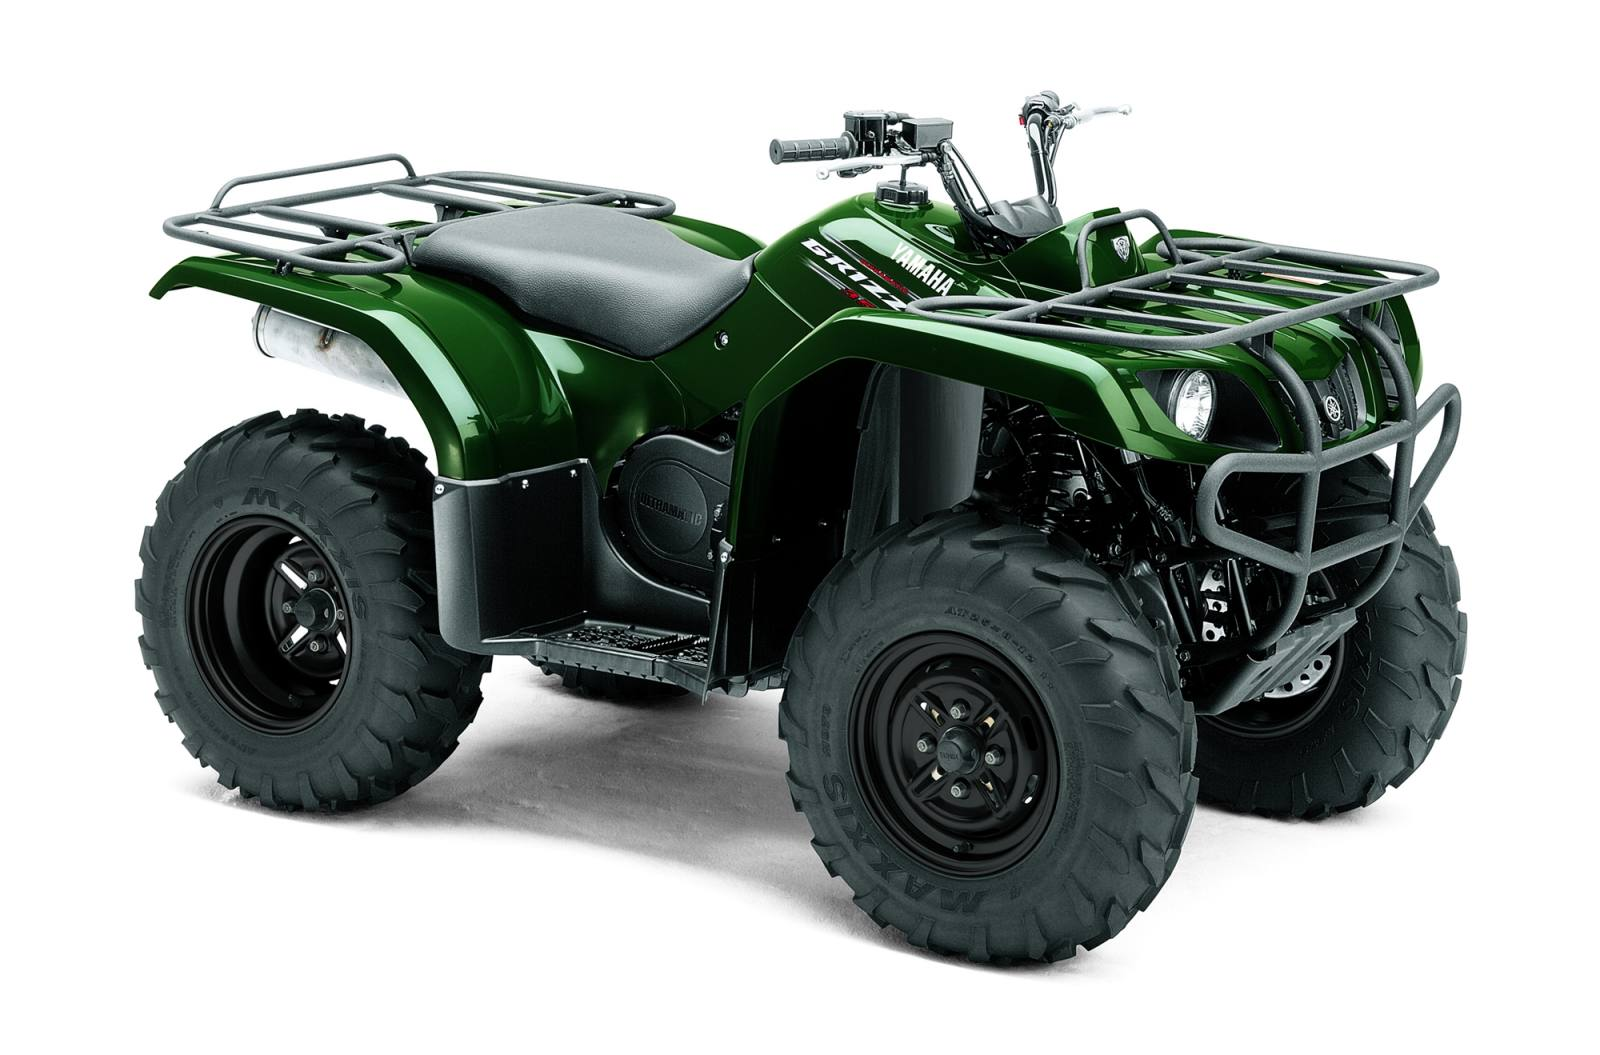 2014 yamaha grizzly 350 automatic for sale in fairbanks ak rh northernpowersports com 2008 yamaha grizzly service manual 2009 yamaha grizzly 700 owners manual pdf